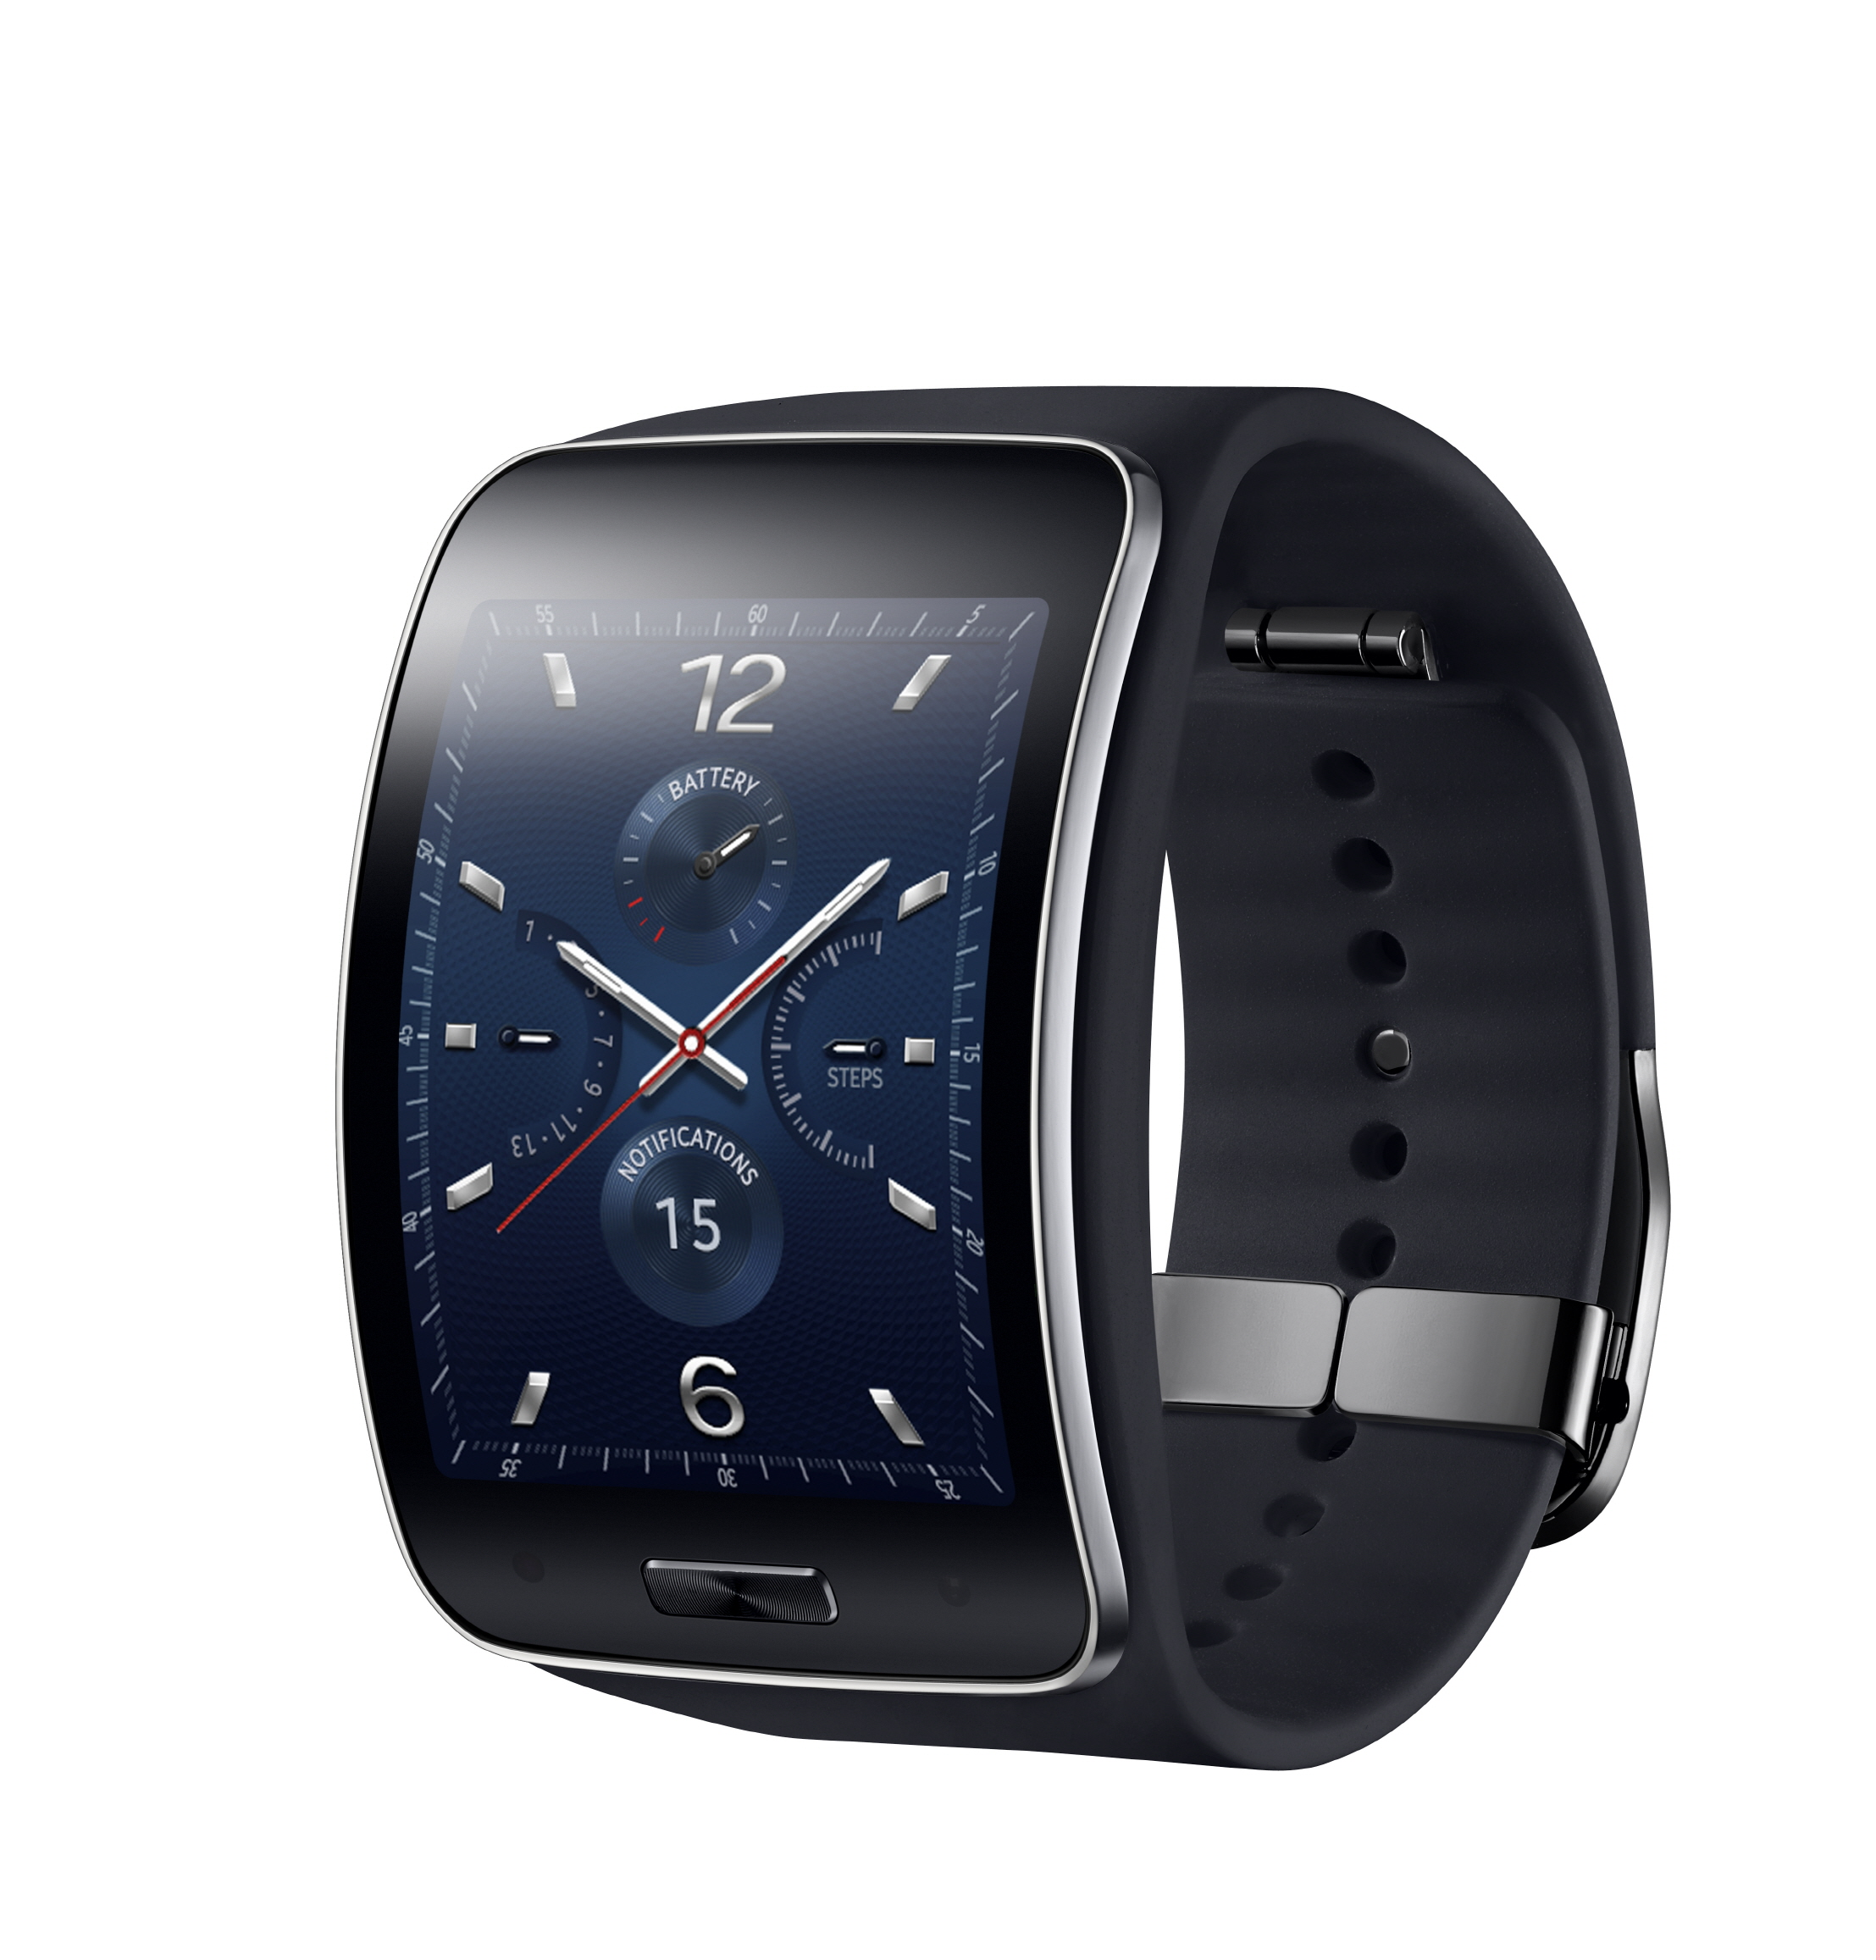 smartwatch mobile global en smartphone uk watch black sony smart products english watches